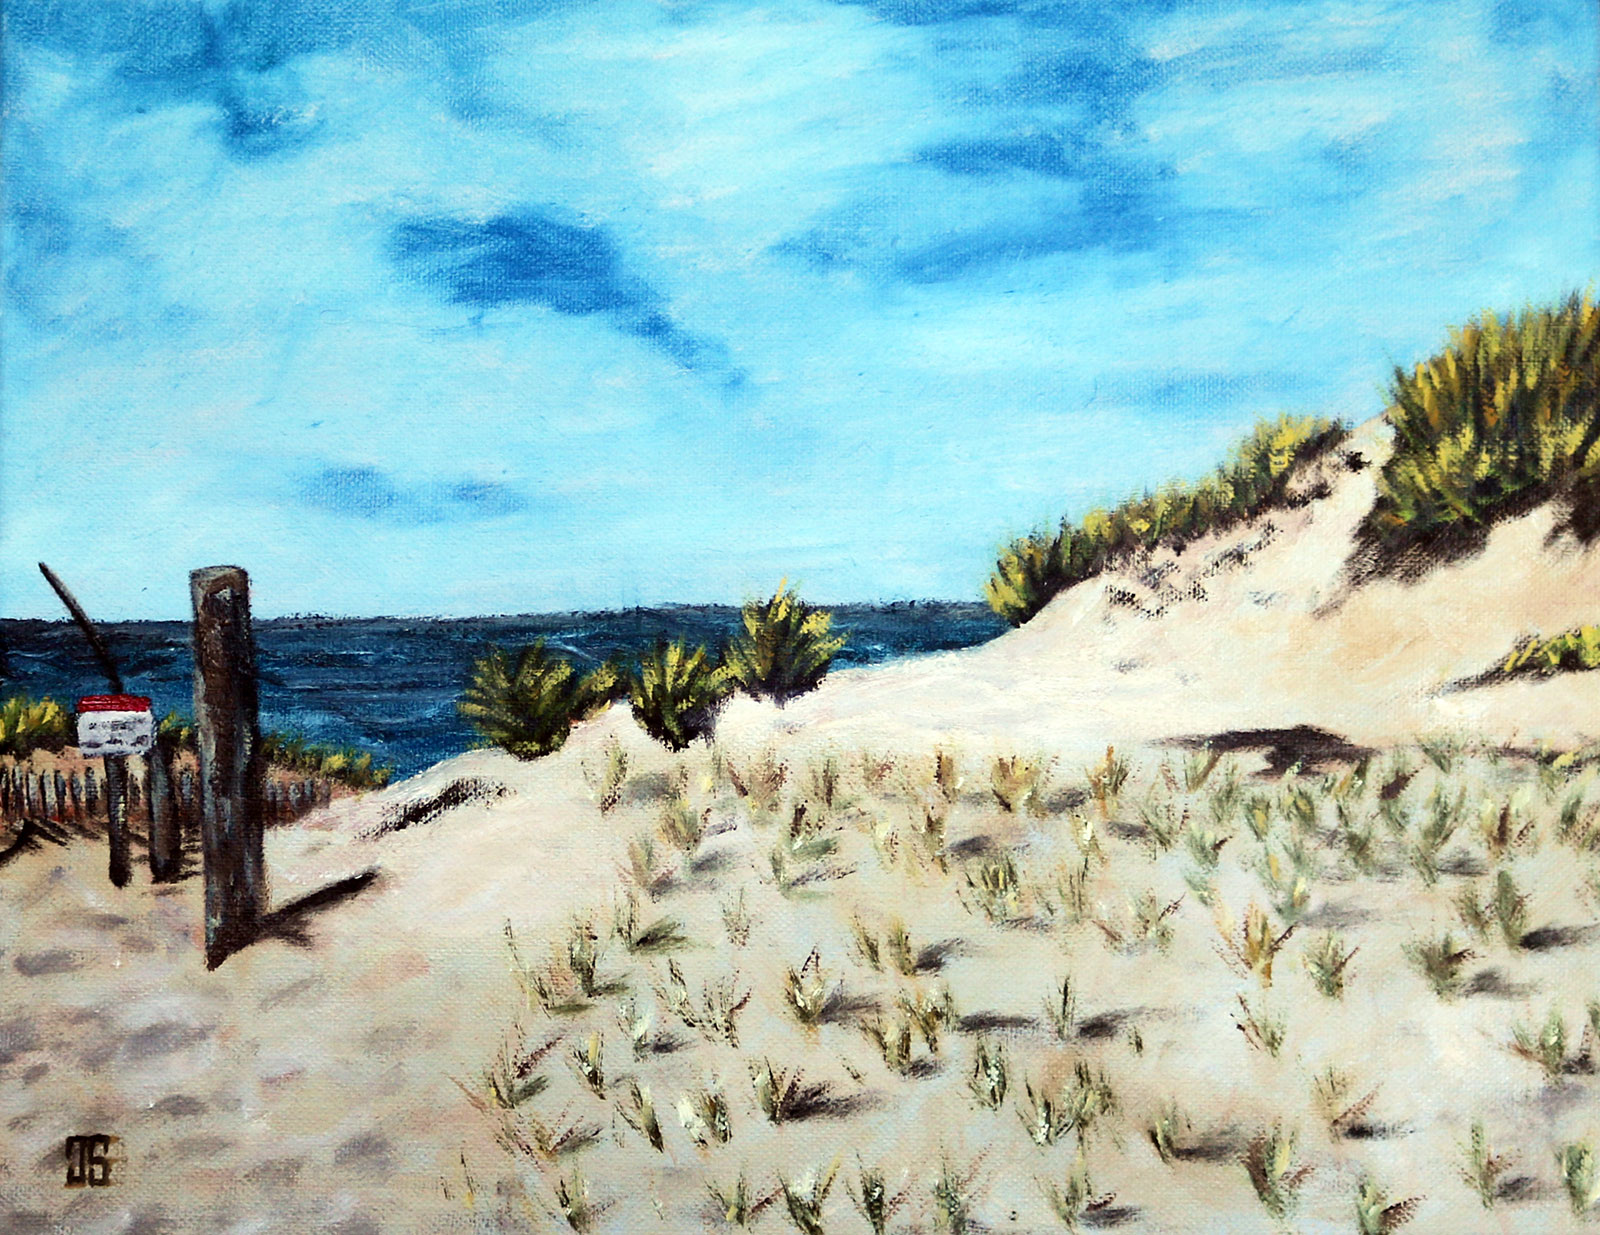 oil painting of race point beach in provincetown on cape cod by american artist jeffrey dale starr